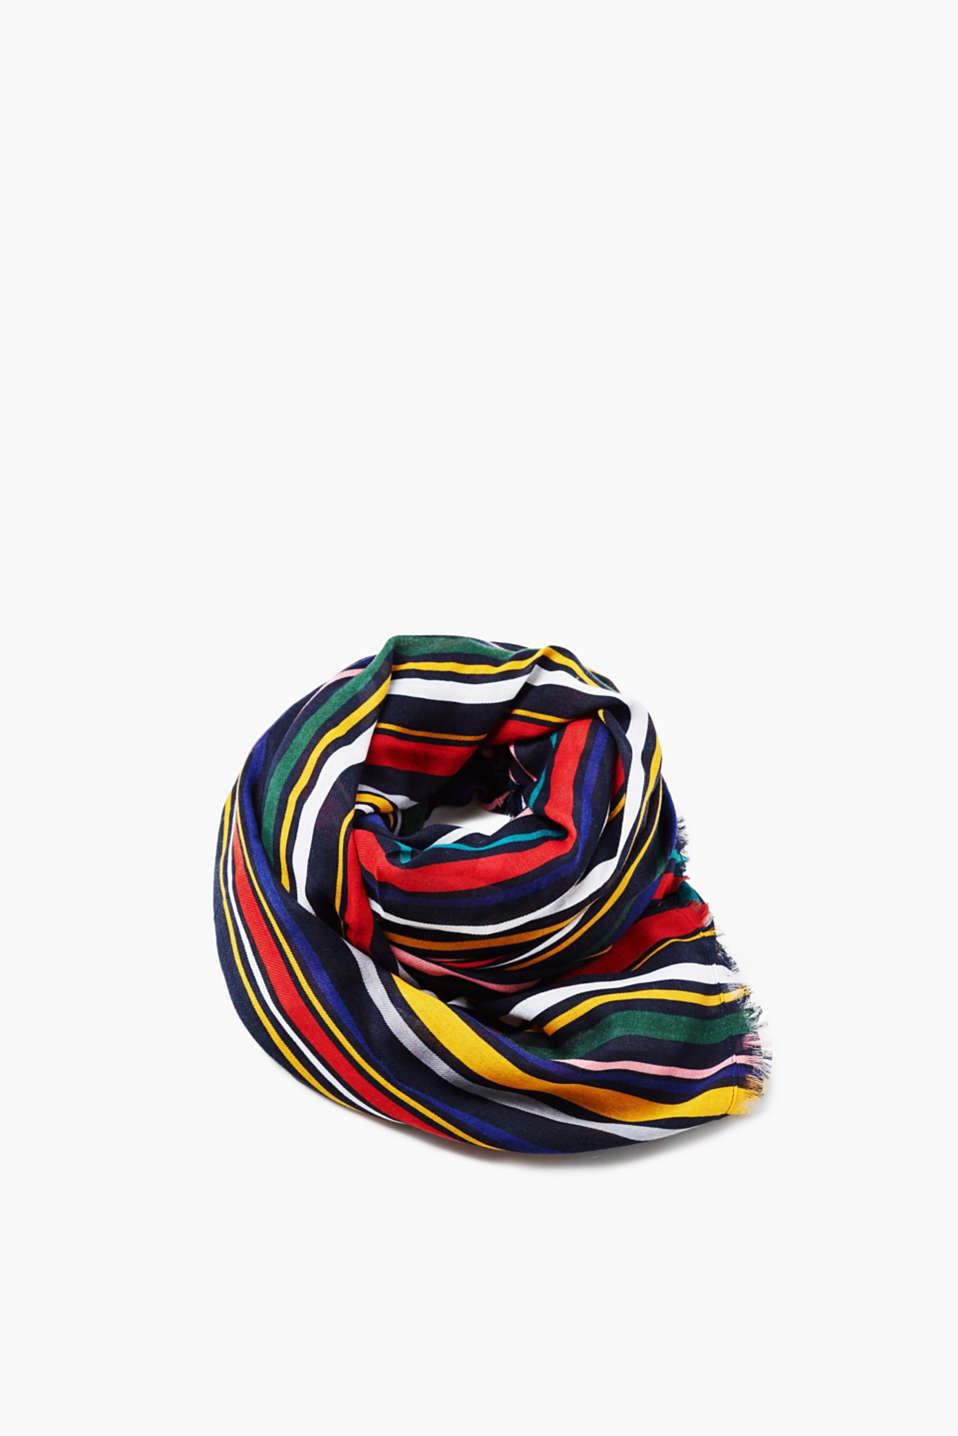 This colourful, eye-catching piece adds a cheery twist to any outfit! A colourful model with vibrant vertical stripes.